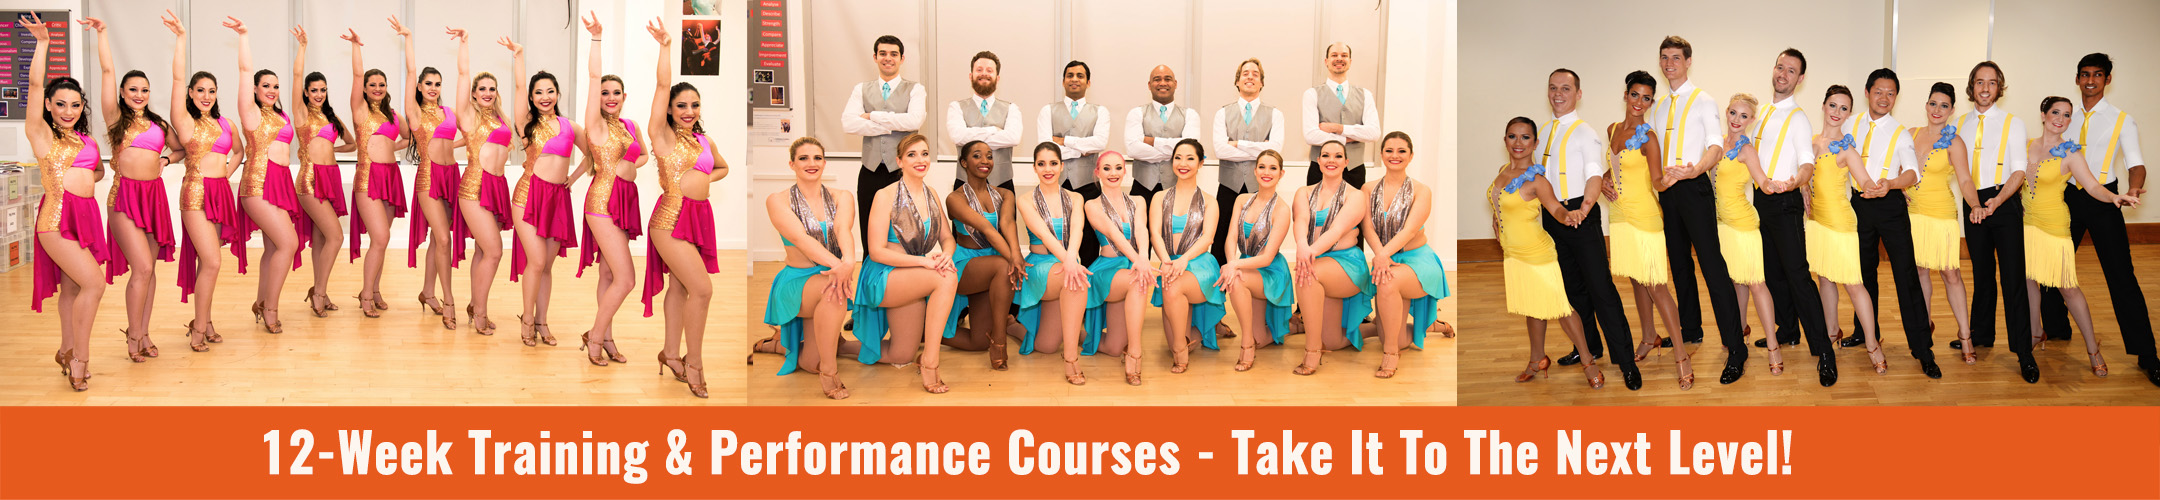 Latin Dance Performance Courses Banner